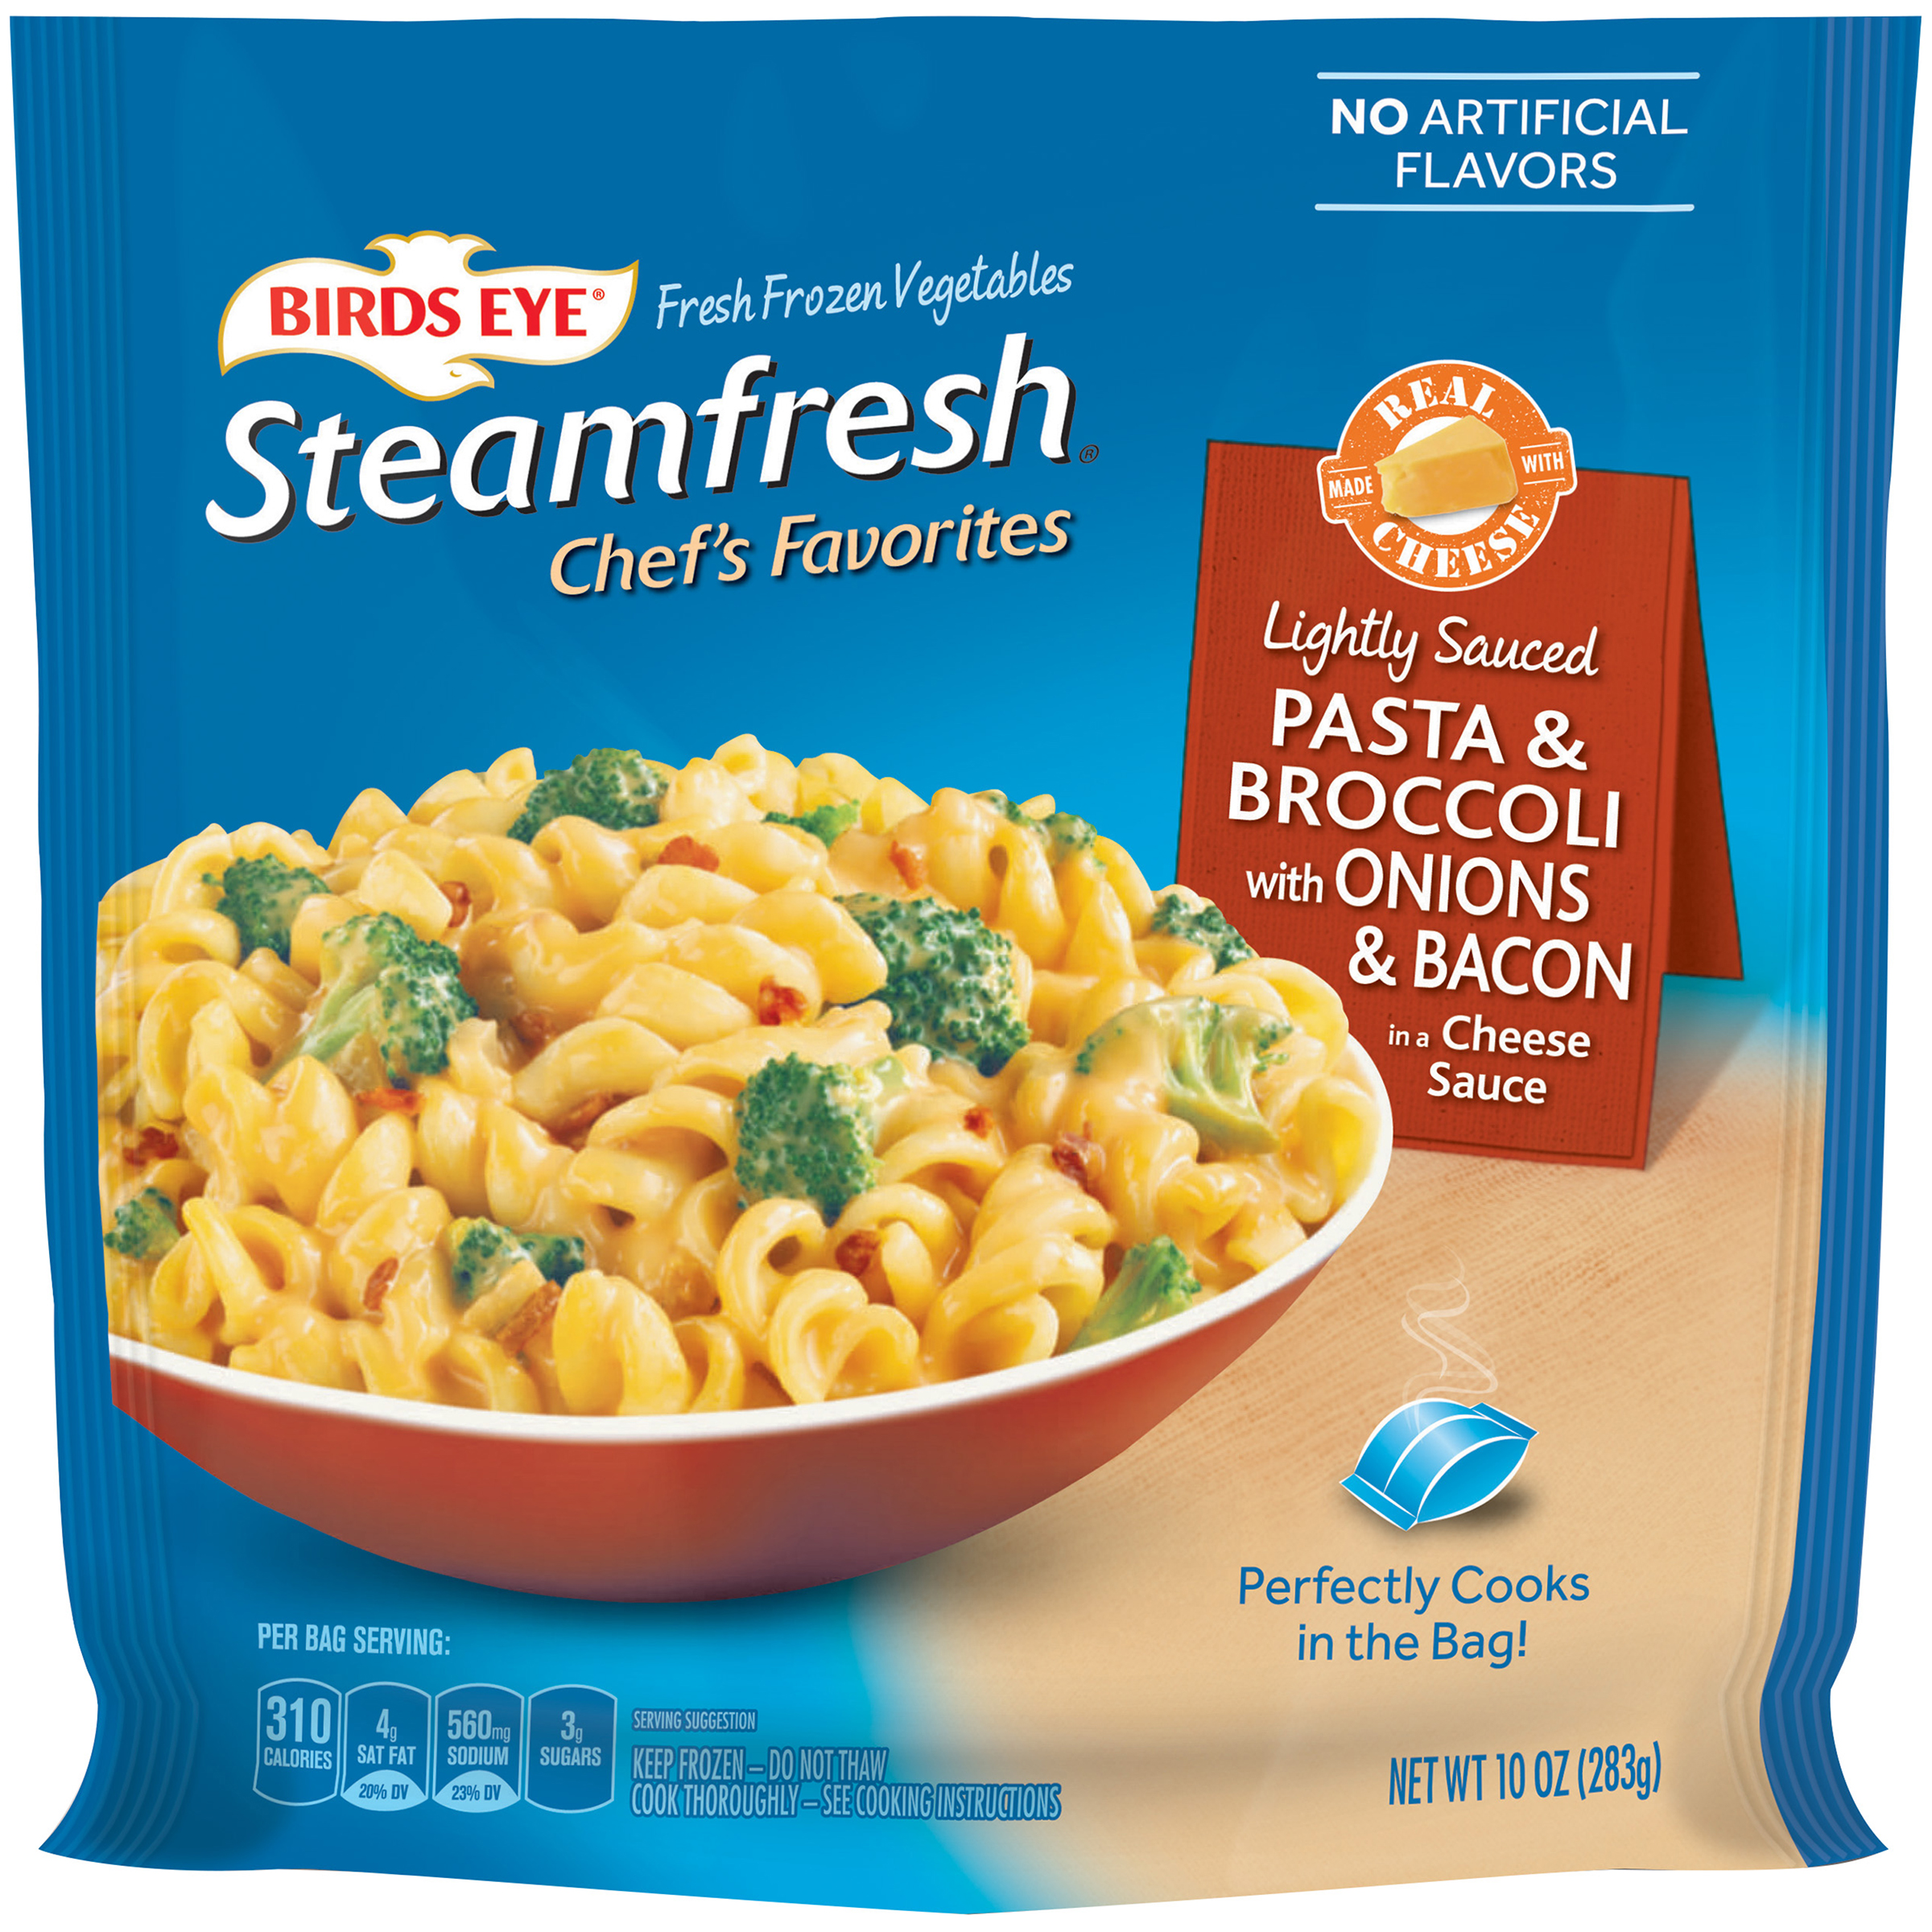 Birds Eye® Steamfresh® Chef's Favorites Pasta & Broccoli with Onions & Bacon in a Cheese Sauce 10 oz. Bag